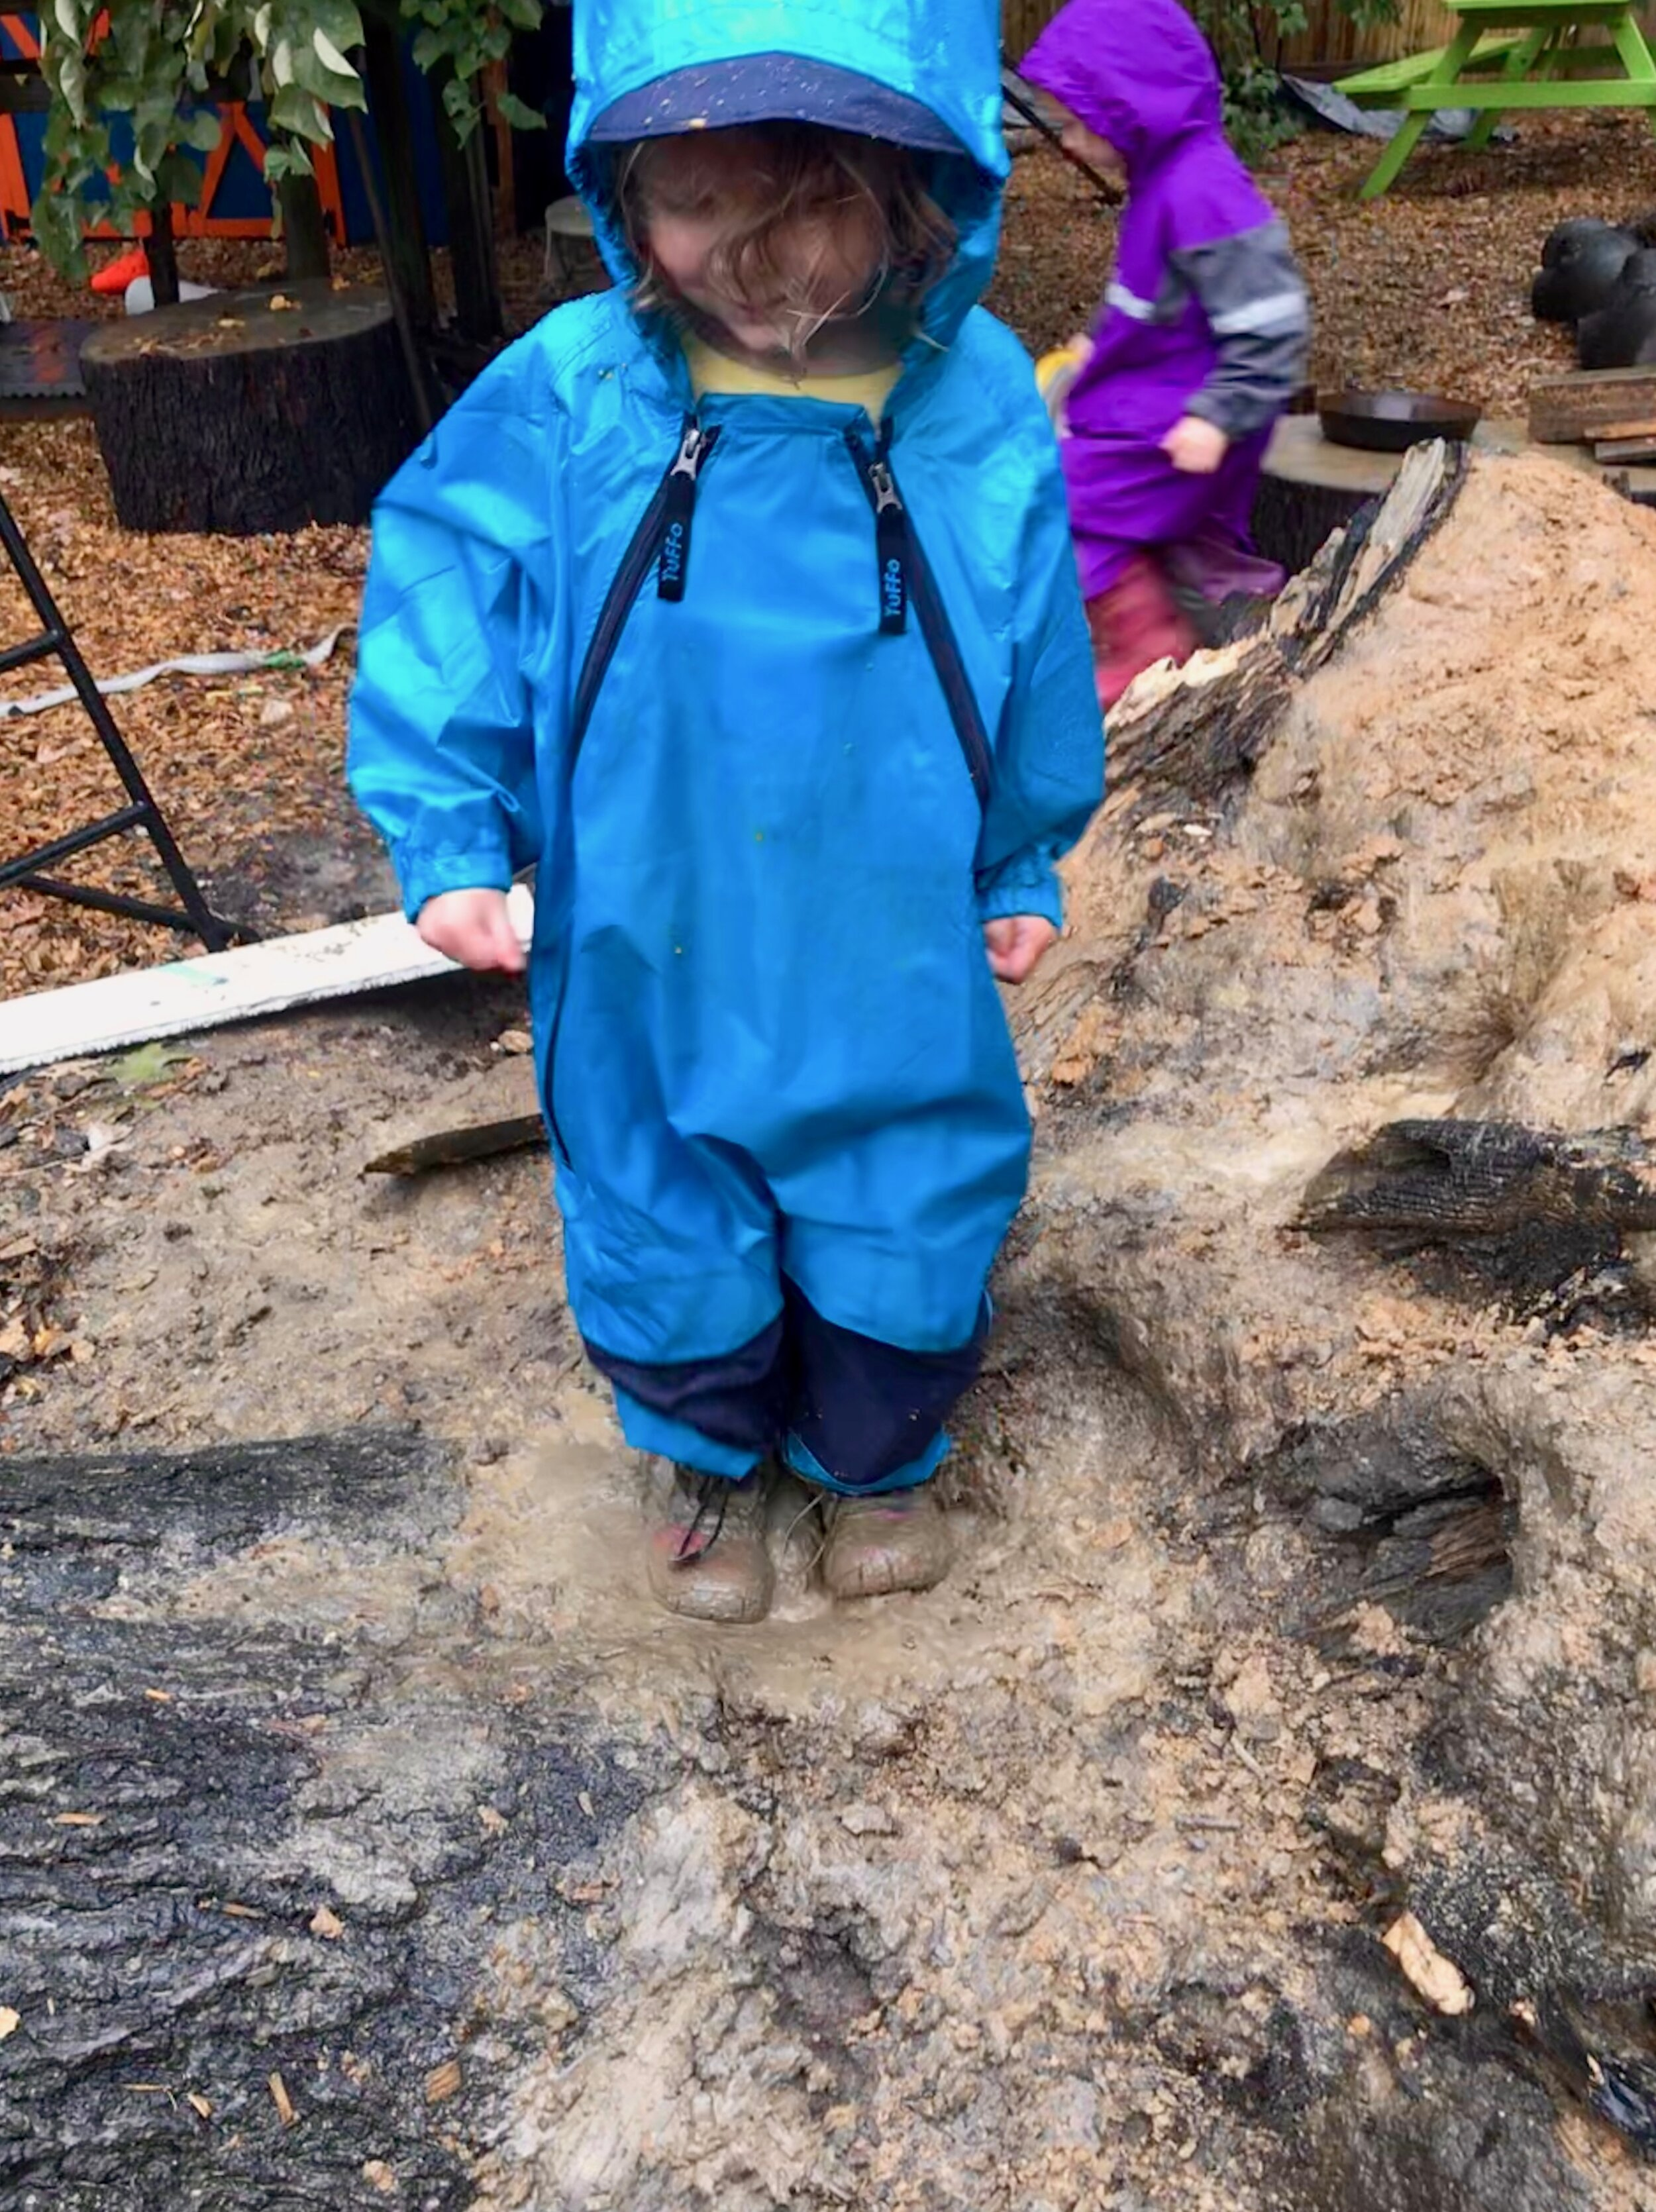 The rain was so fabulous that there was a mud puddle ON TOP of the fallen tree. Amazing!